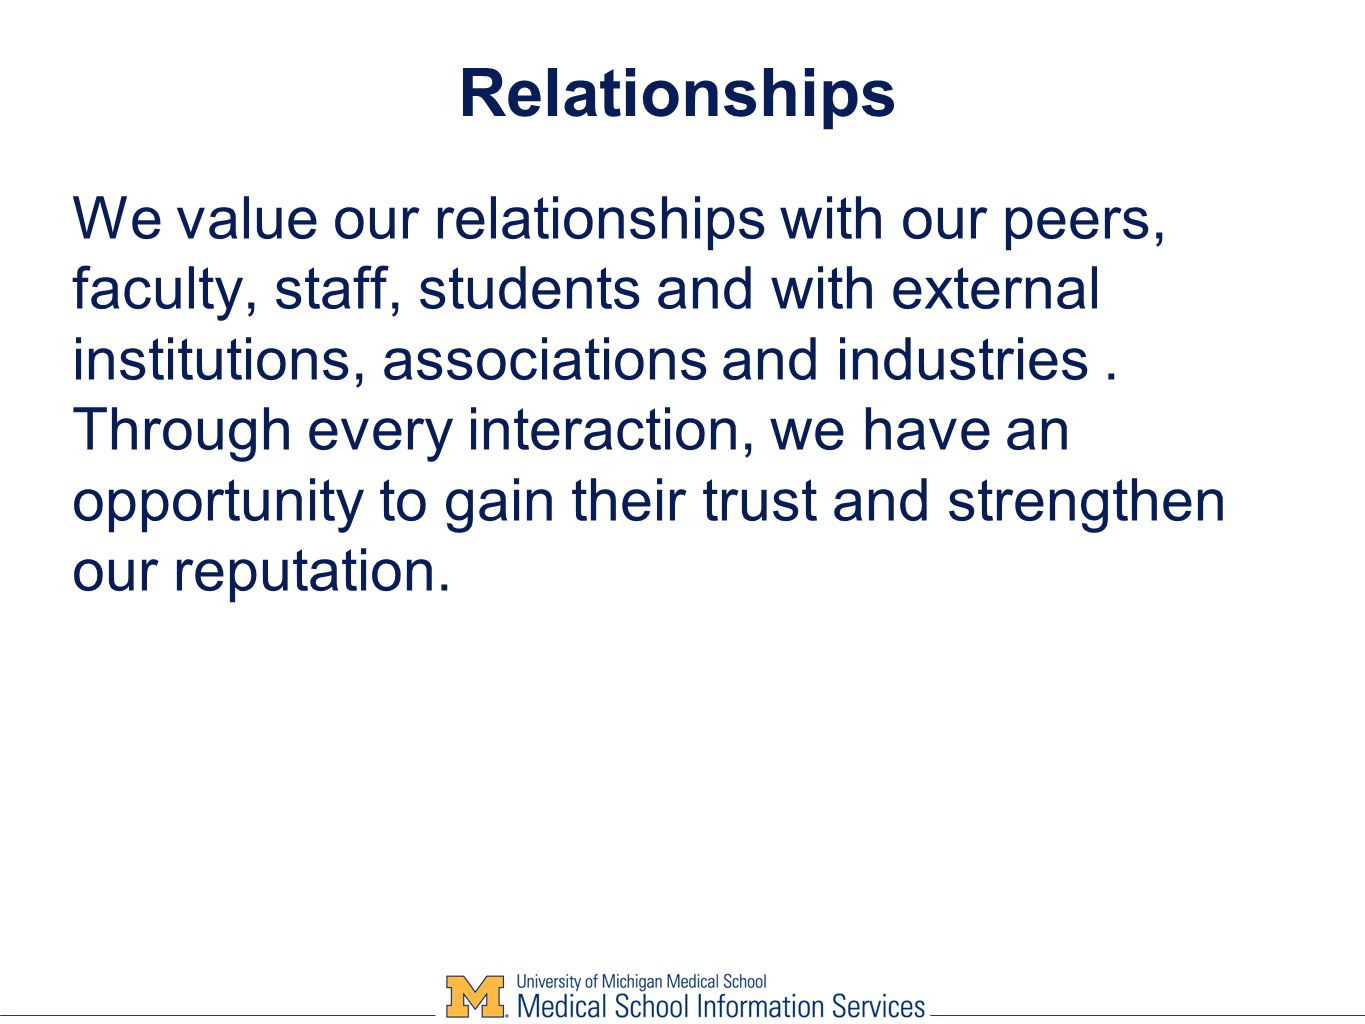 Relationships We value our relationships with our peers, faculty, staff, students and with external institutions, associations and industries.